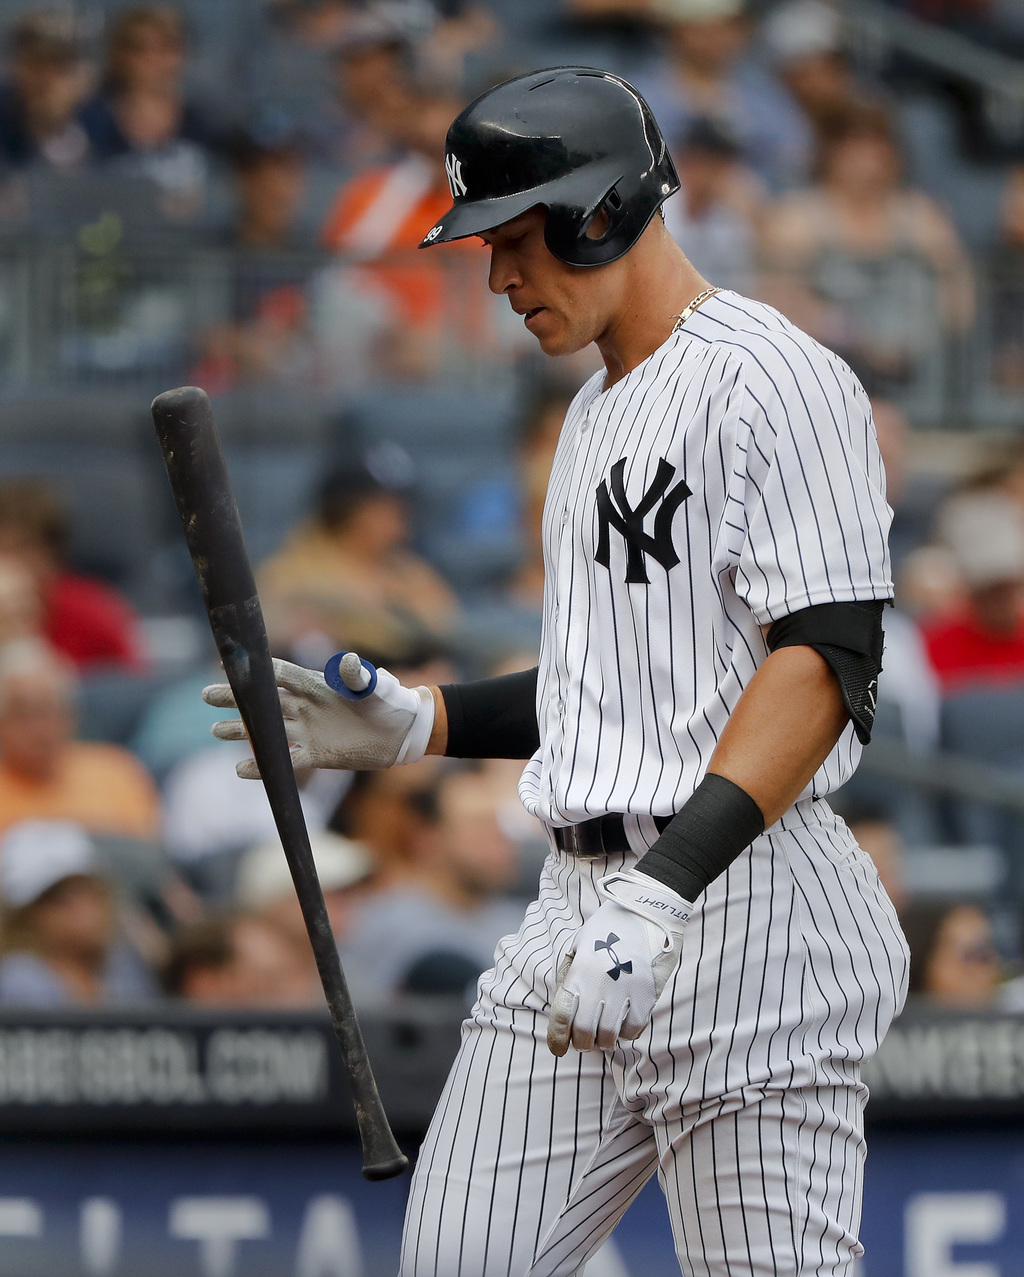 New York Yankees' Aaron Judge flips his bat after striking out against the Detroit Tigers during the third inning of a baseball game, Wednesday, Aug. ...